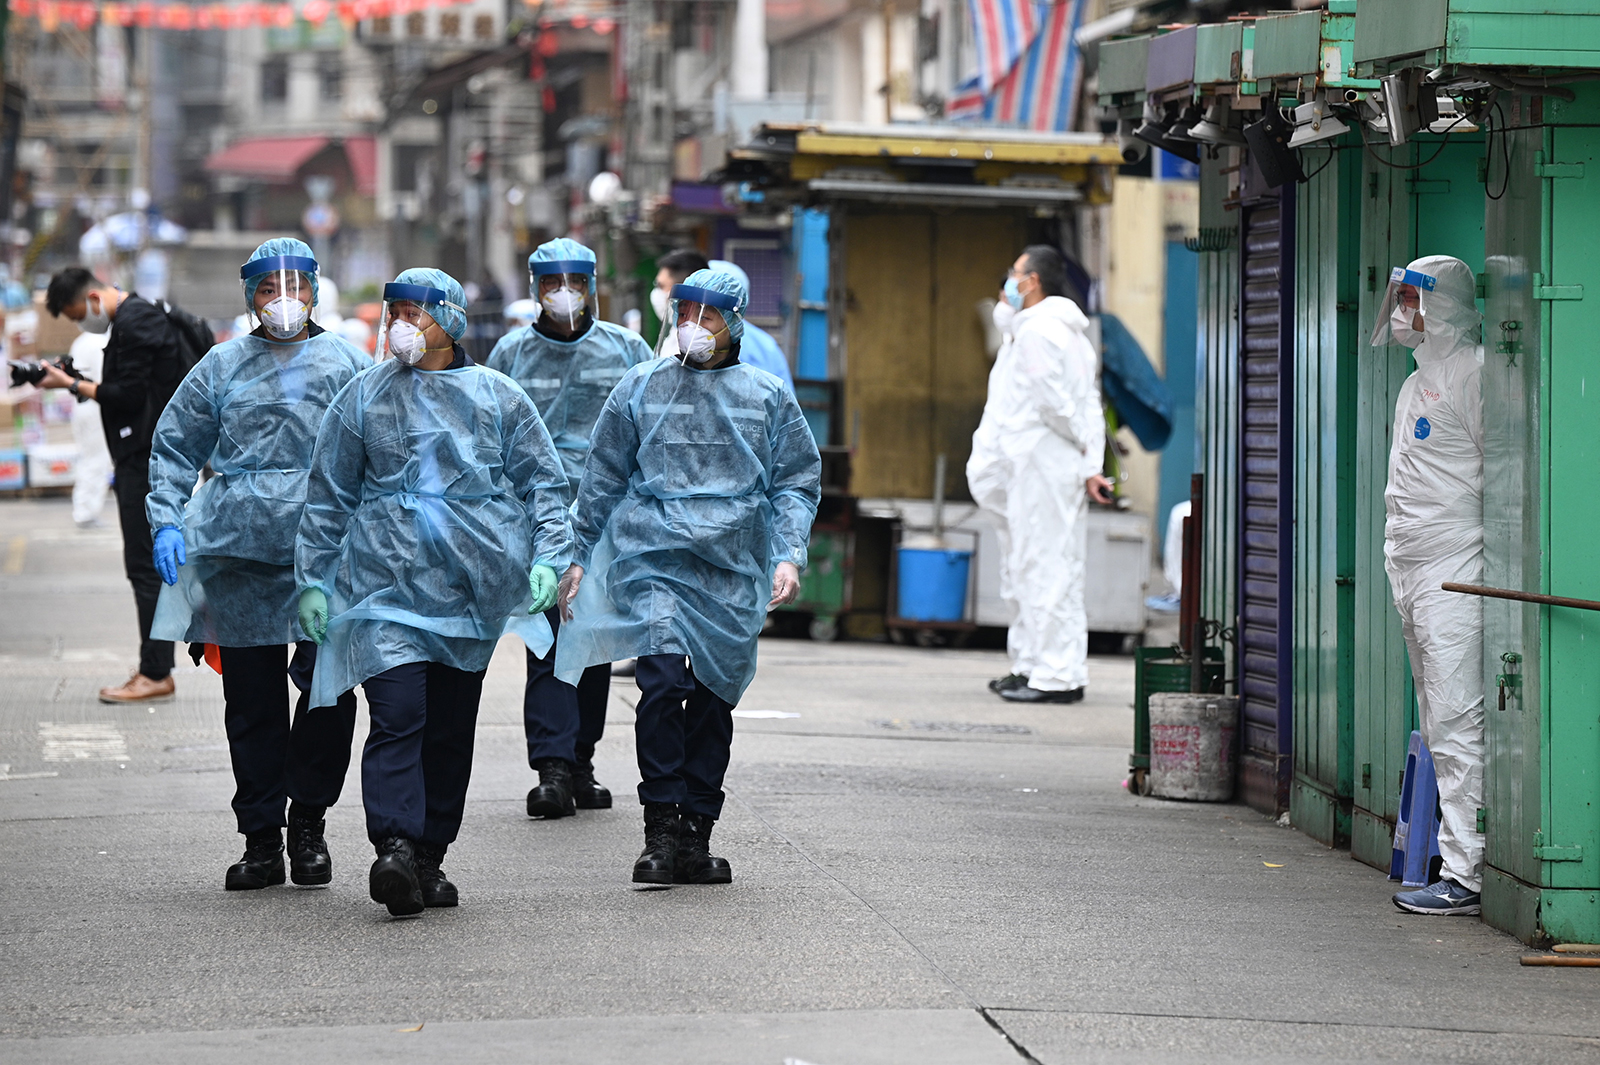 Police patrol the streets while wearing protective gear as authorities continue testing for the second day in the Jordan area of Hong Kong, on January 24.